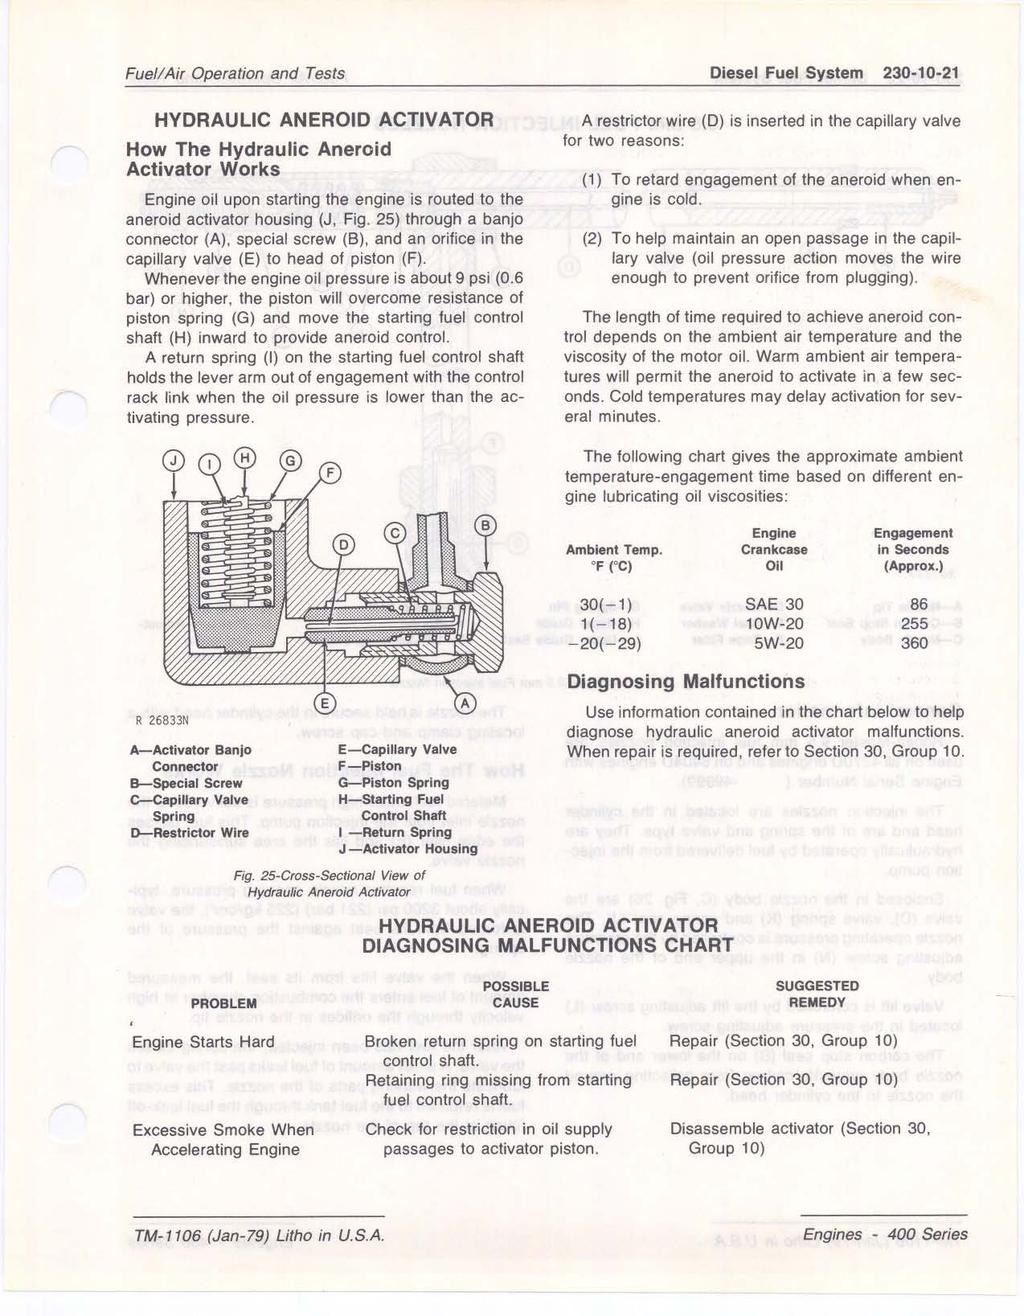 Section 230 FUEL/AIR OPERATION AND TESTS CONTENTS OF THIS